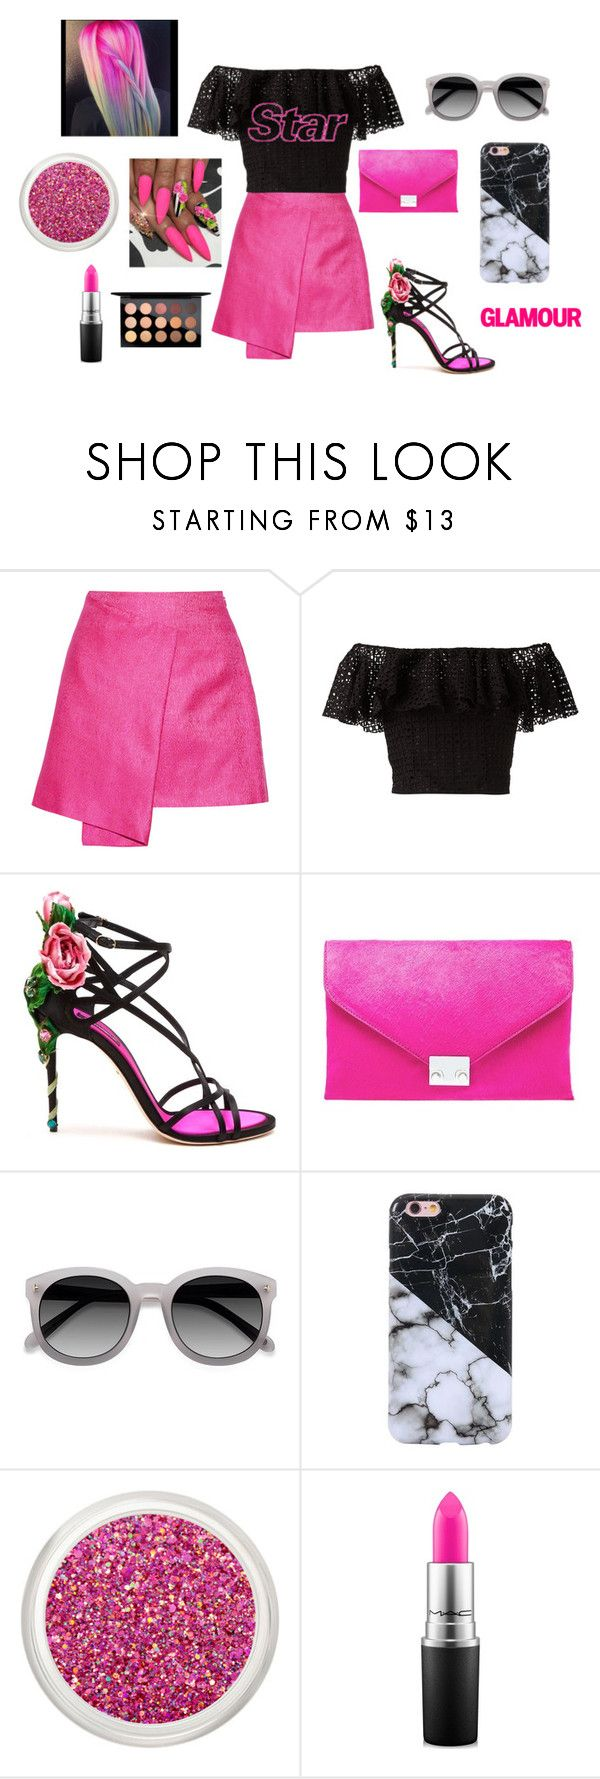 """pink today"" by sara-fumanti ❤ liked on Polyvore featuring Maiyet, Philosophy di Lorenzo Serafini, Dolce&Gabbana, Loeffler Randall, Ace and MAC Cosmetics"